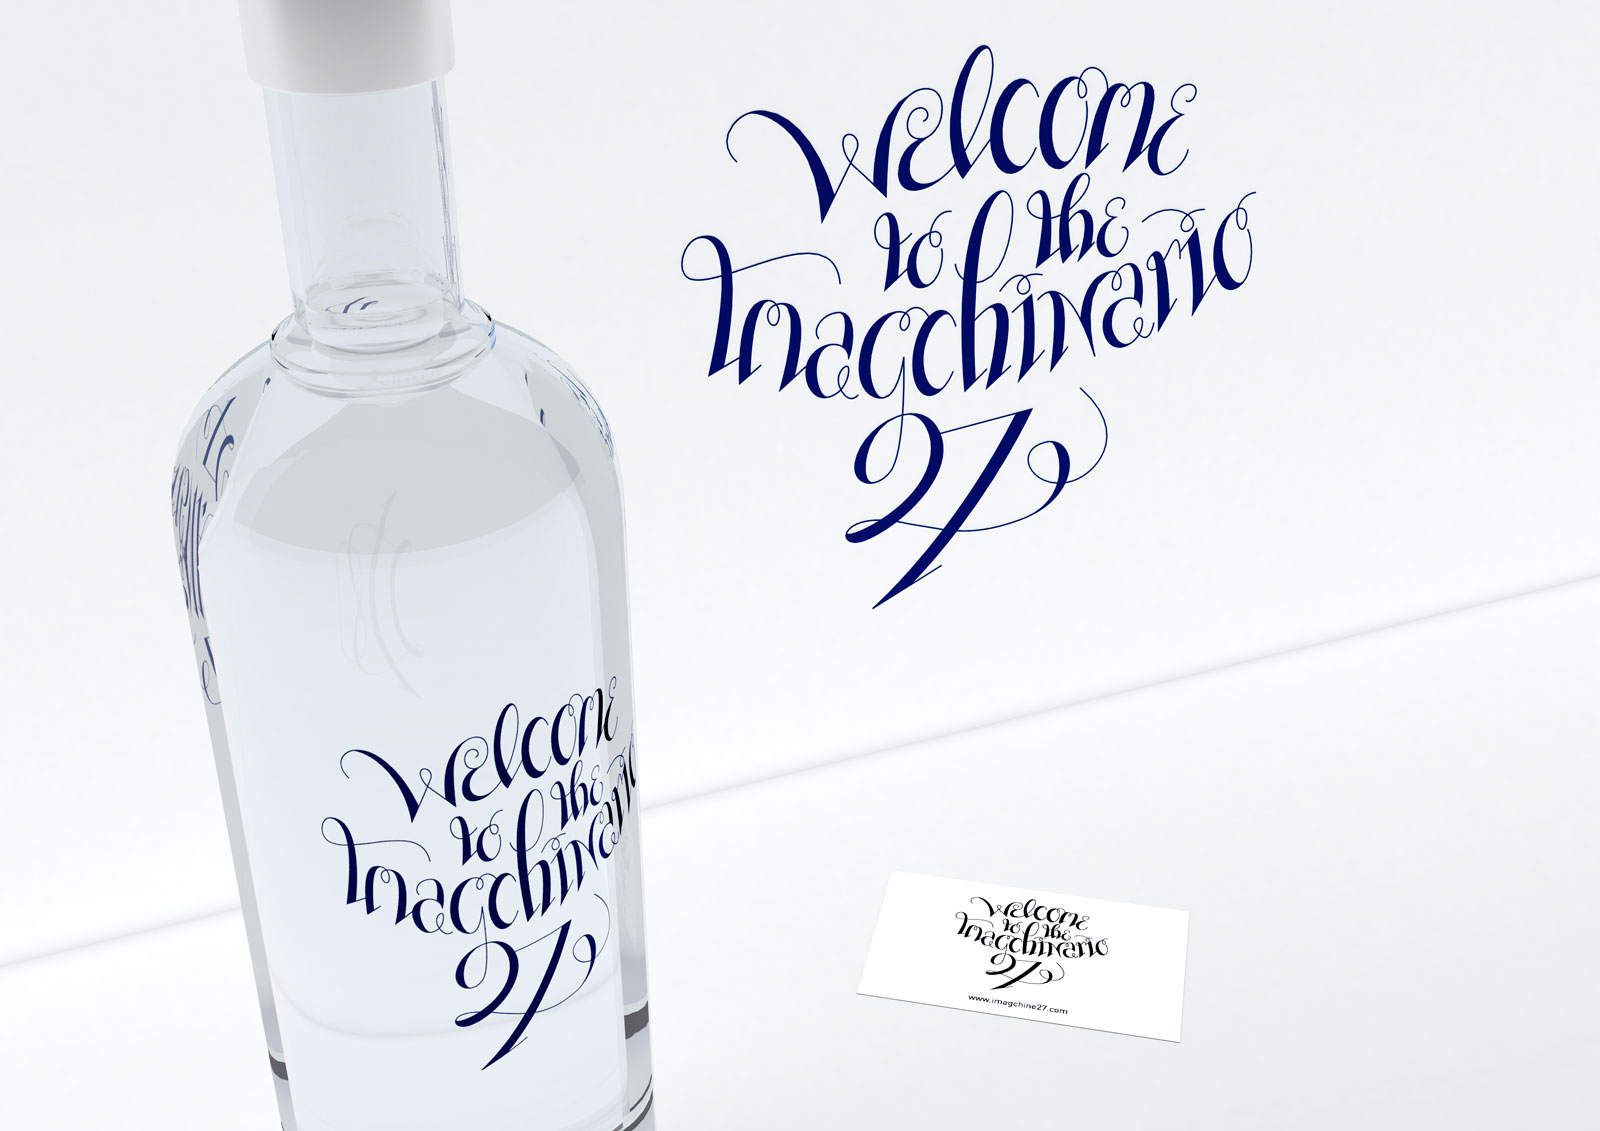 Render - Lettering de Welcome to the Imagchinario 27